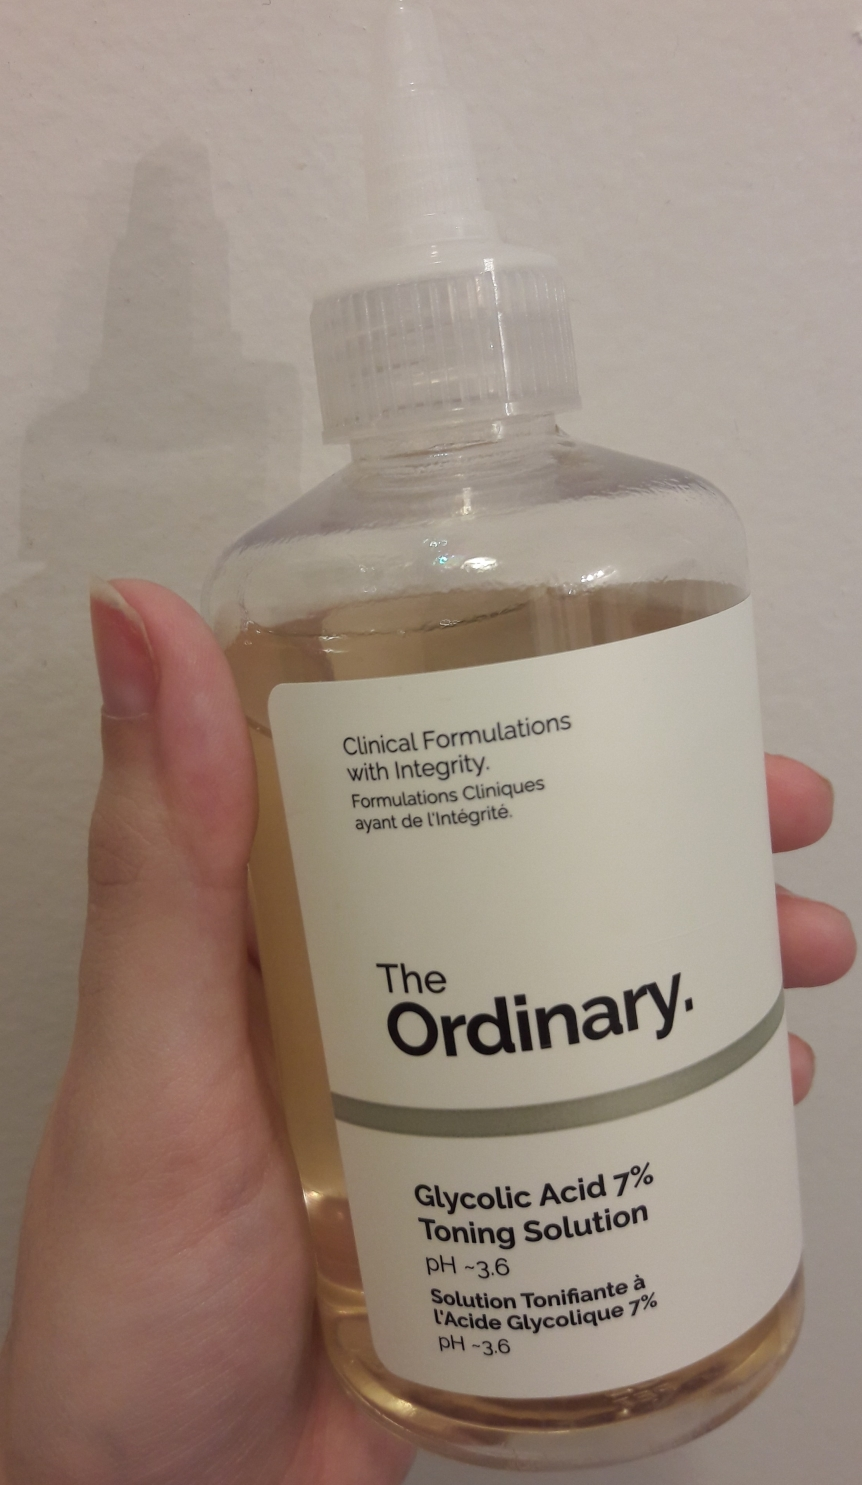 Bottle of The Ordinary's Glycolic Acid 7% Toning Solution.